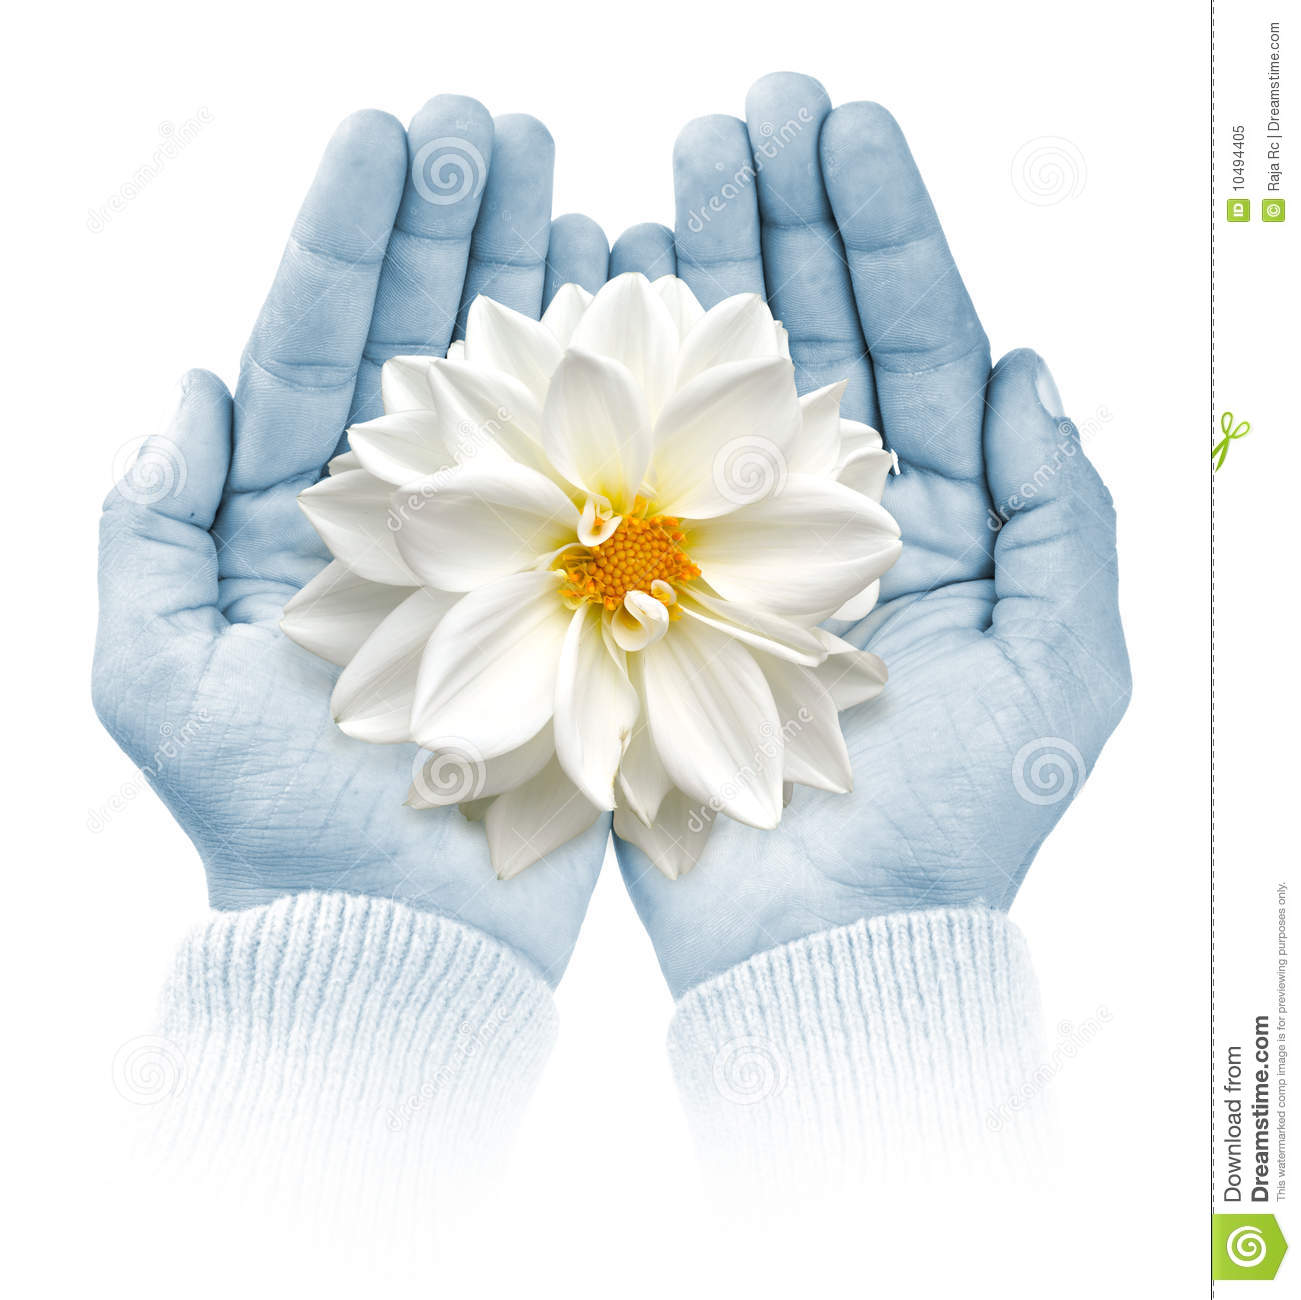 Giving life royalty free stock photo image 10494405 for Generous living